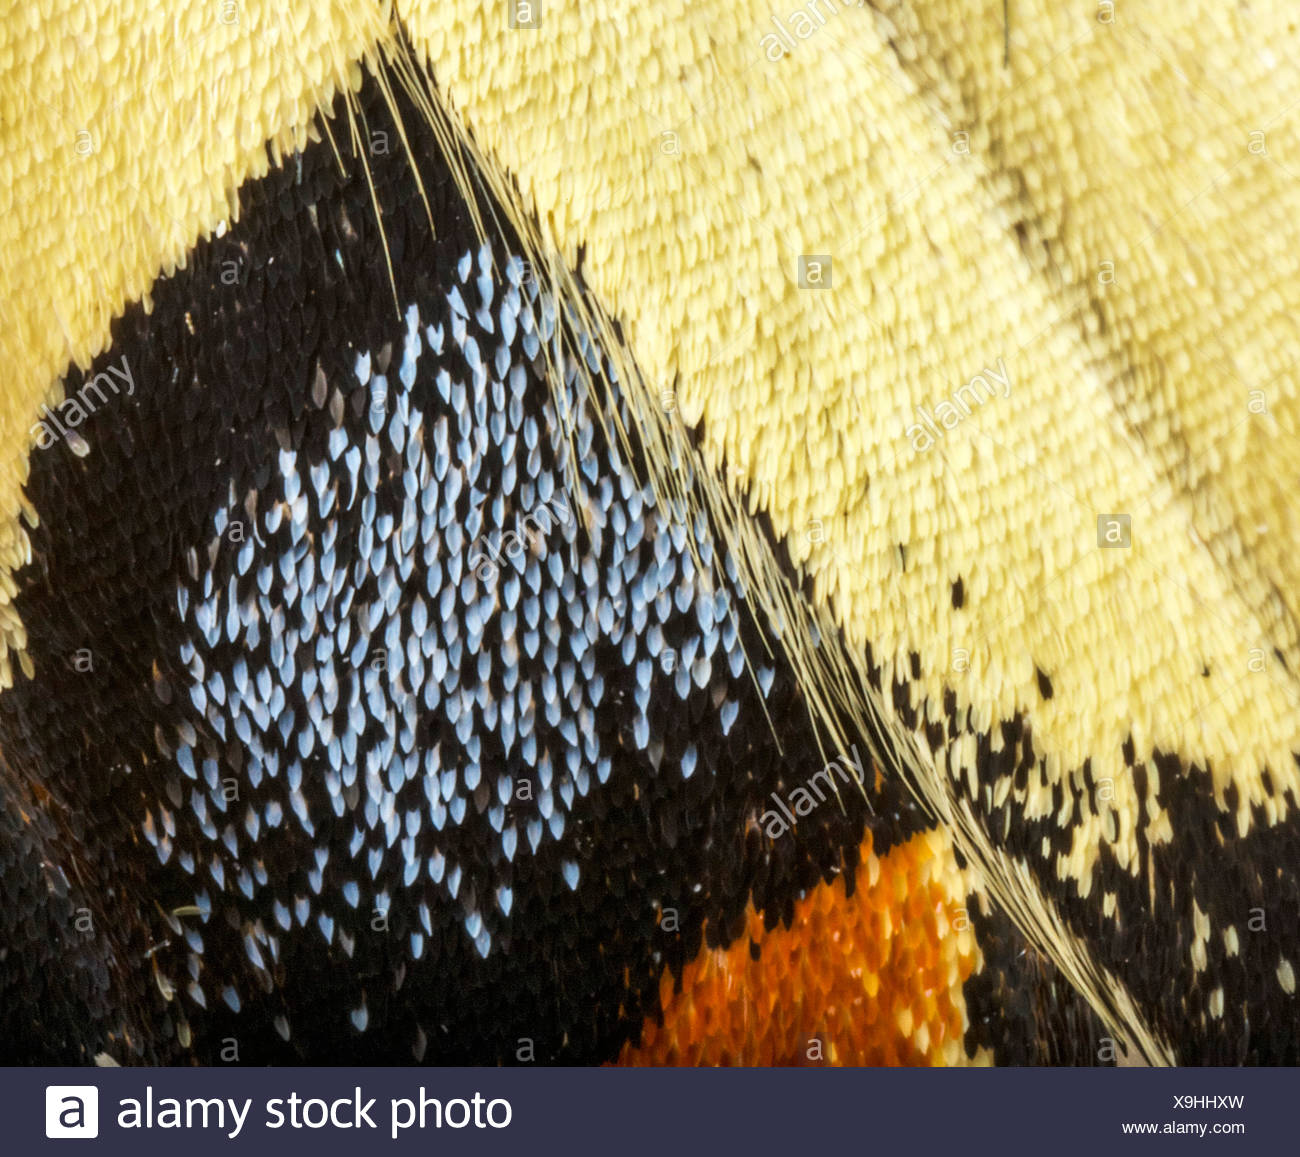 Swallowtail butterfly wing - Stock Image